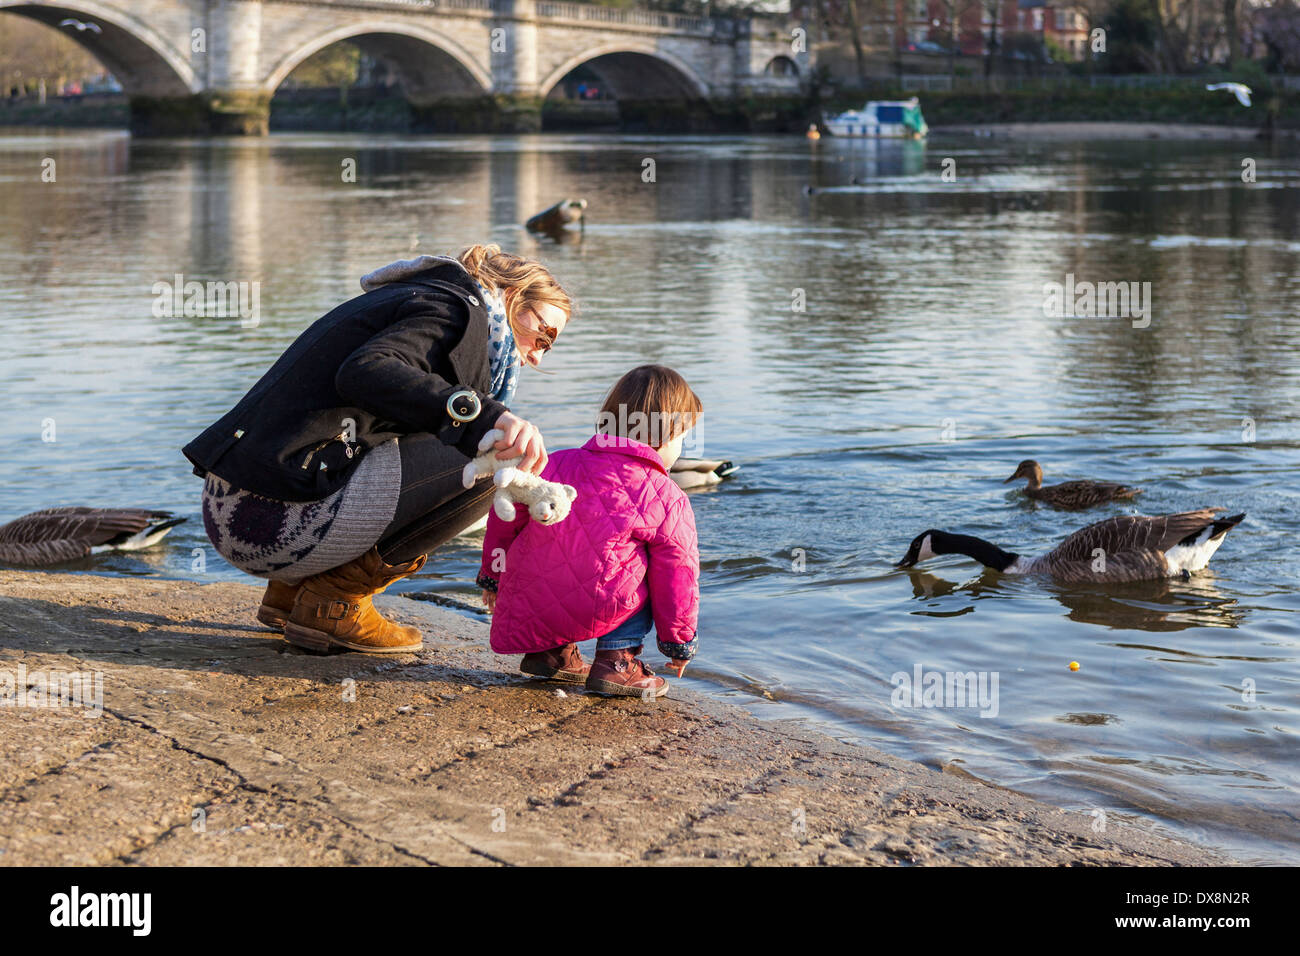 Woman and young girl in pink coat feeding the geese on the banks of the river Thames - Richmond upon Thames, London, UK - Stock Image